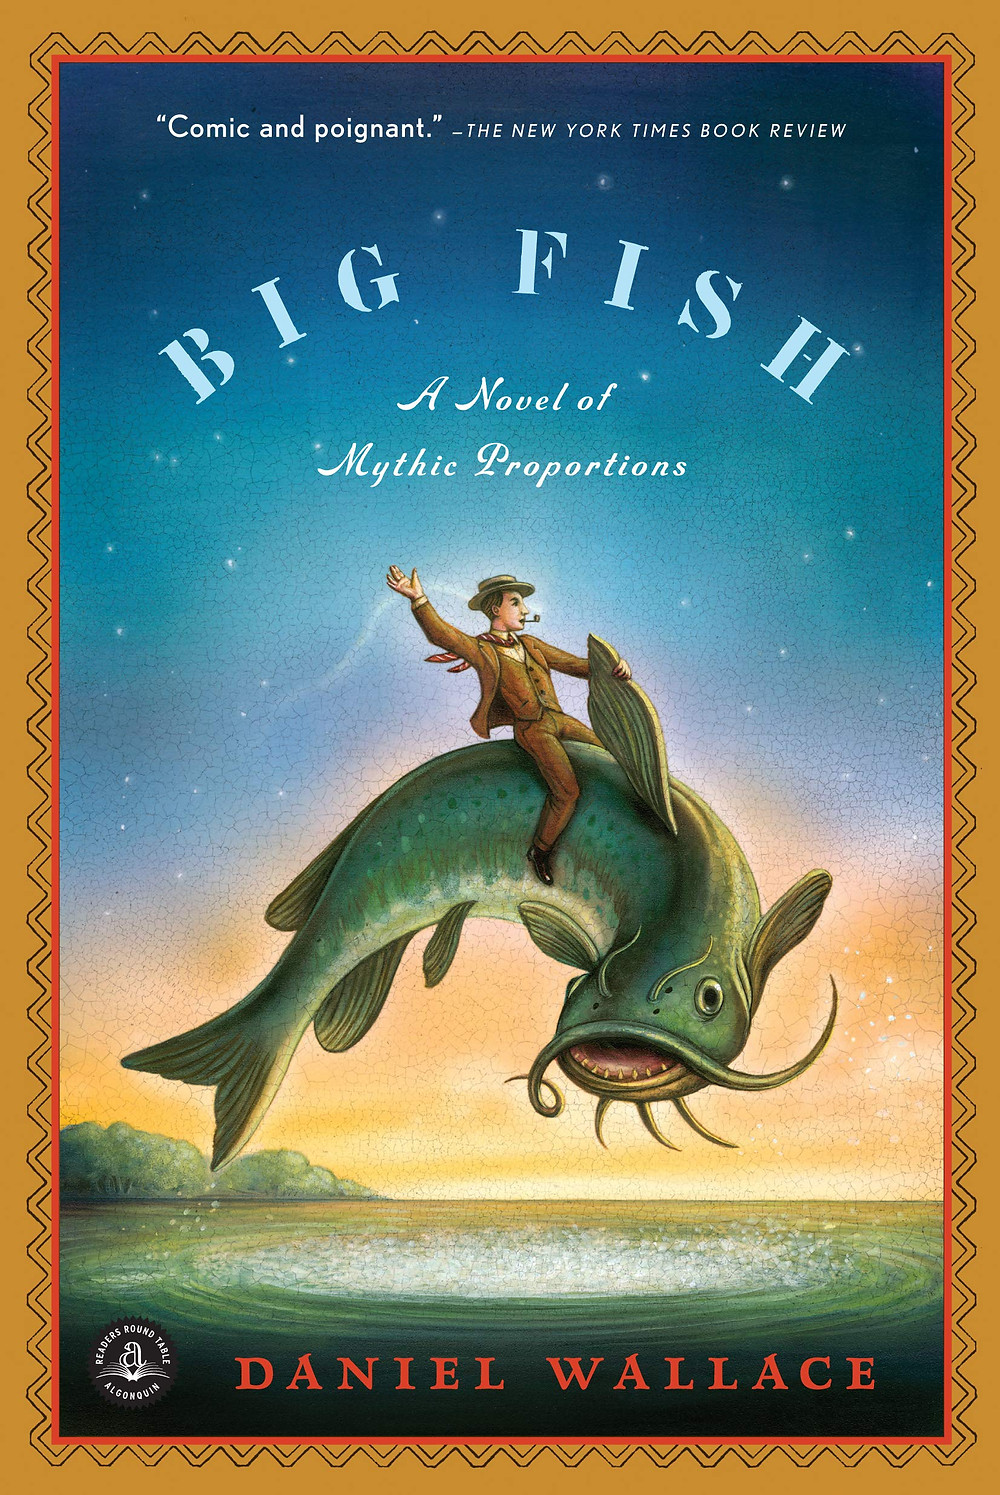 big fish by daniel wallace, big fish cover art, a novel of mythic proportions